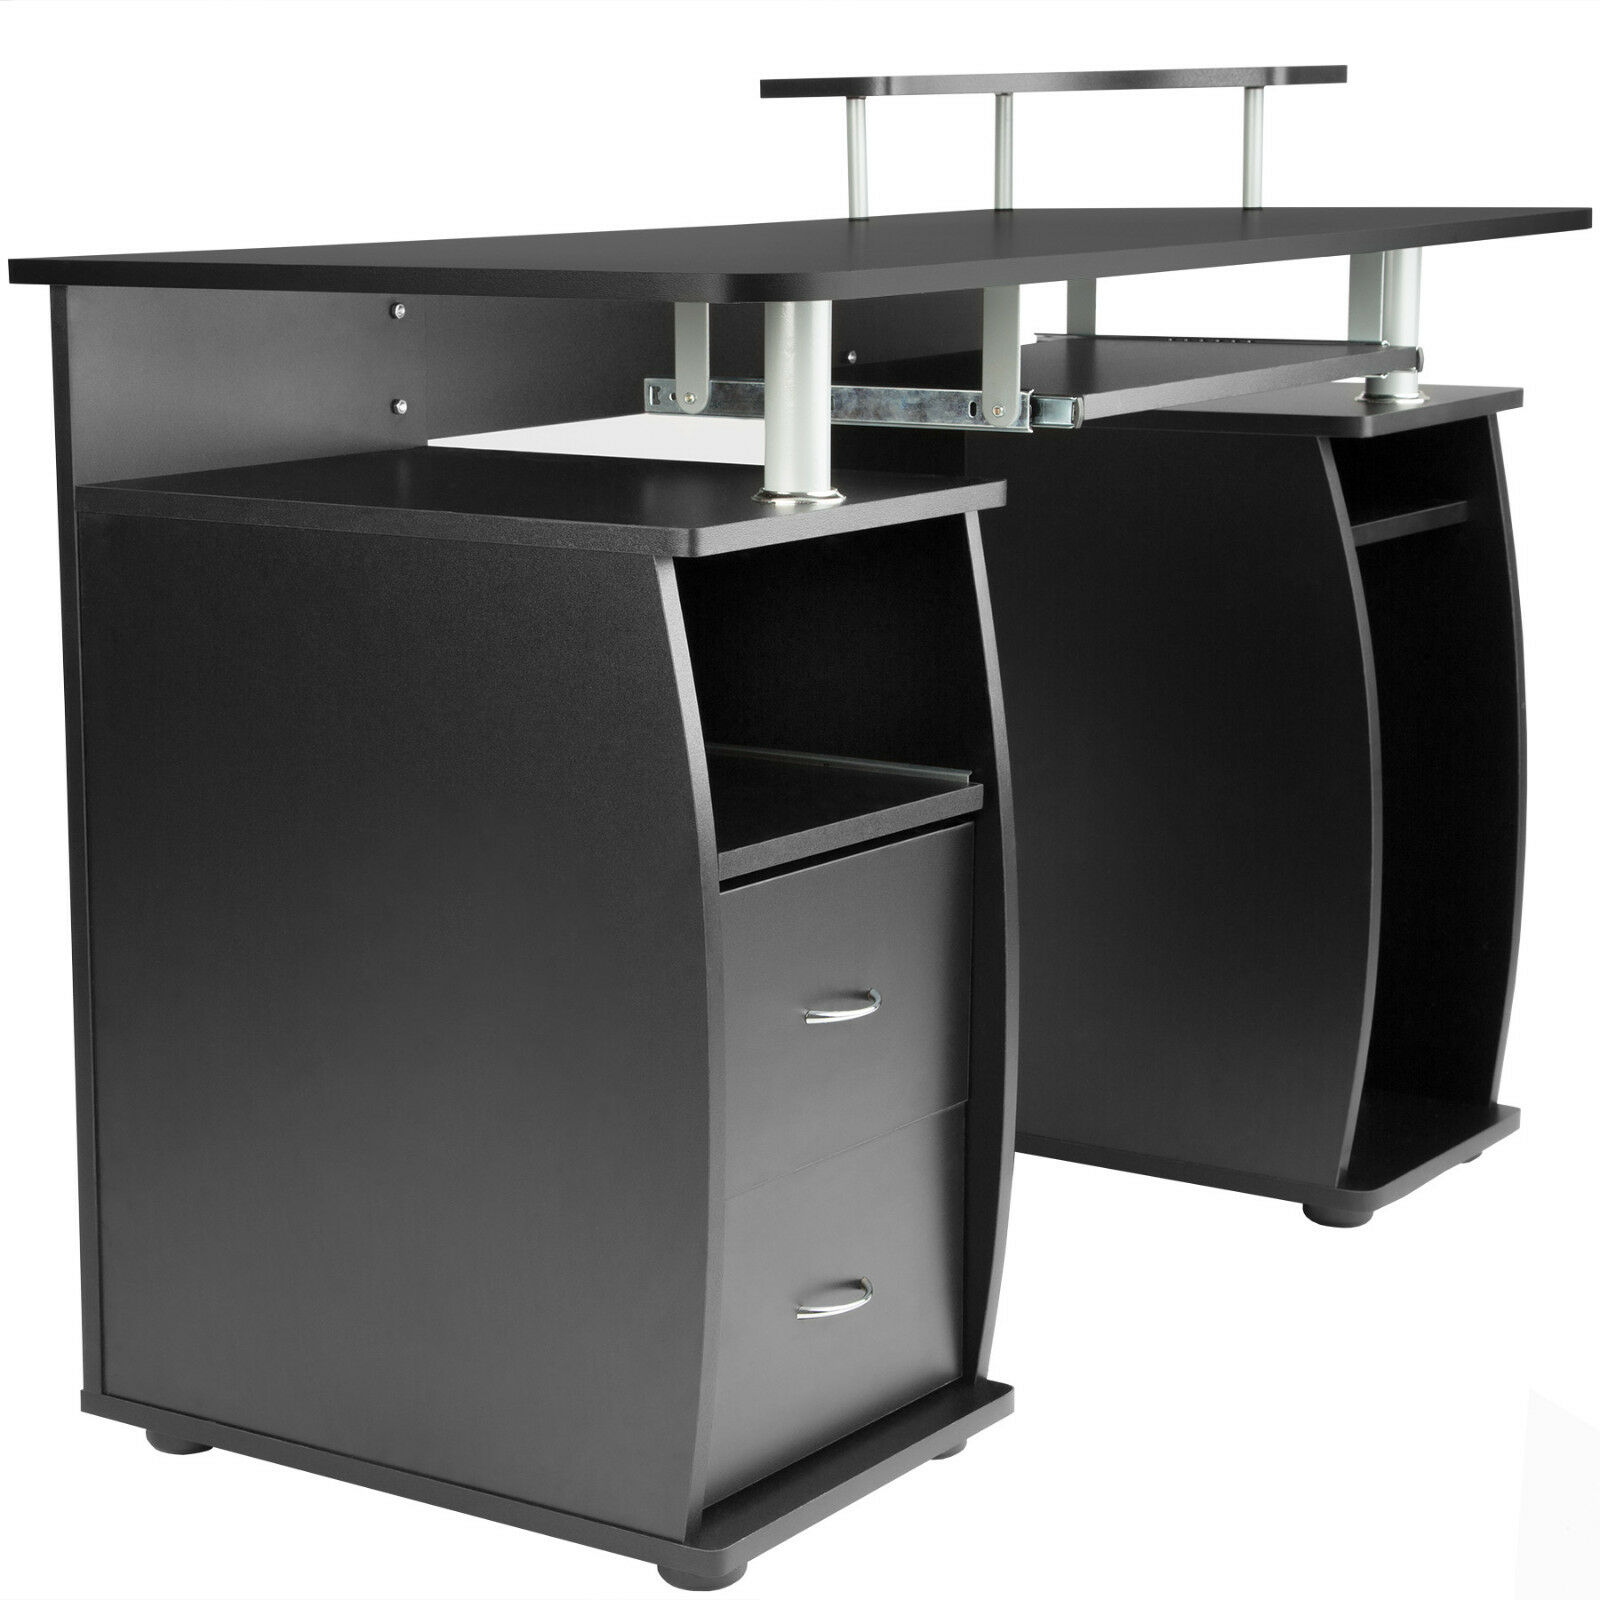 bureau informatique table de l 39 ordinateur travail mobilier meubles pc noir eur 154 90. Black Bedroom Furniture Sets. Home Design Ideas